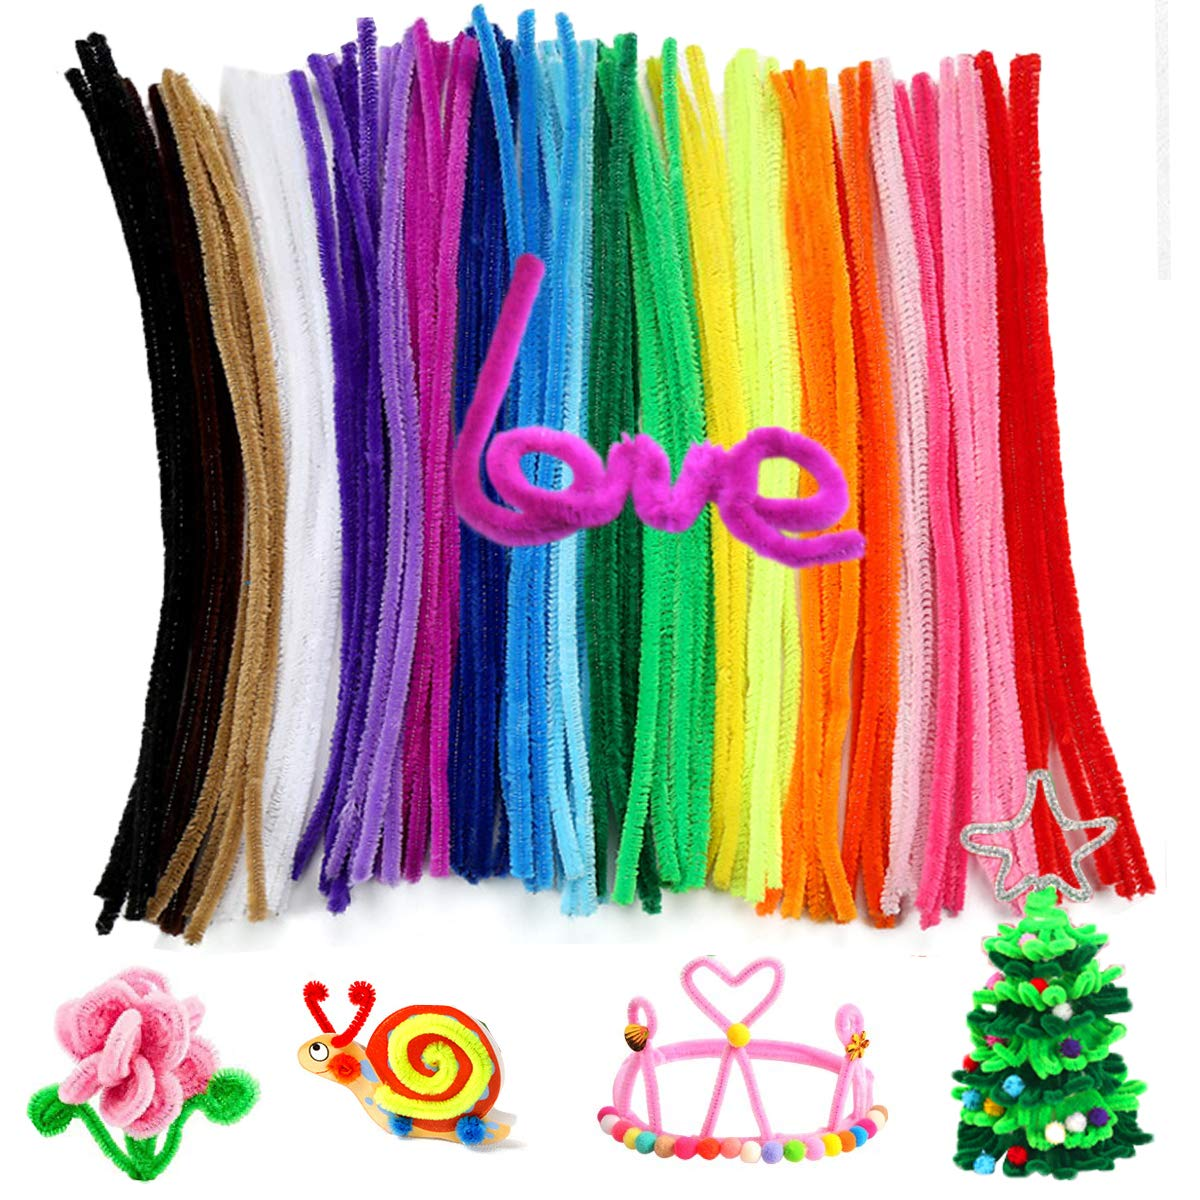 Pipe Cleaners Chenille Stems 6 mm x 12 Inch for DIY Art Craft 100 Pieces Christmas Gift Black SHEENROAD